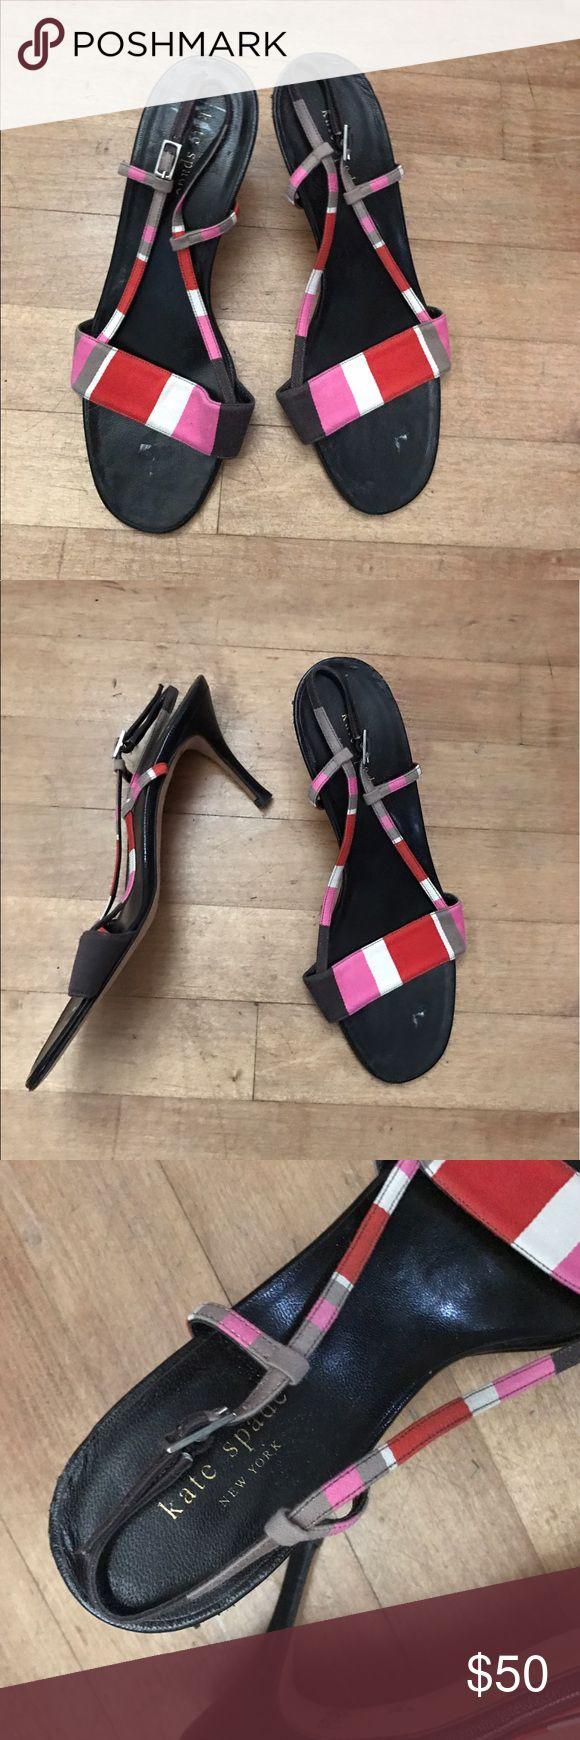 Kate Spade strappy heels sandals Pre-owned - GUC - striped strappy heels kate spade Shoes Sandals